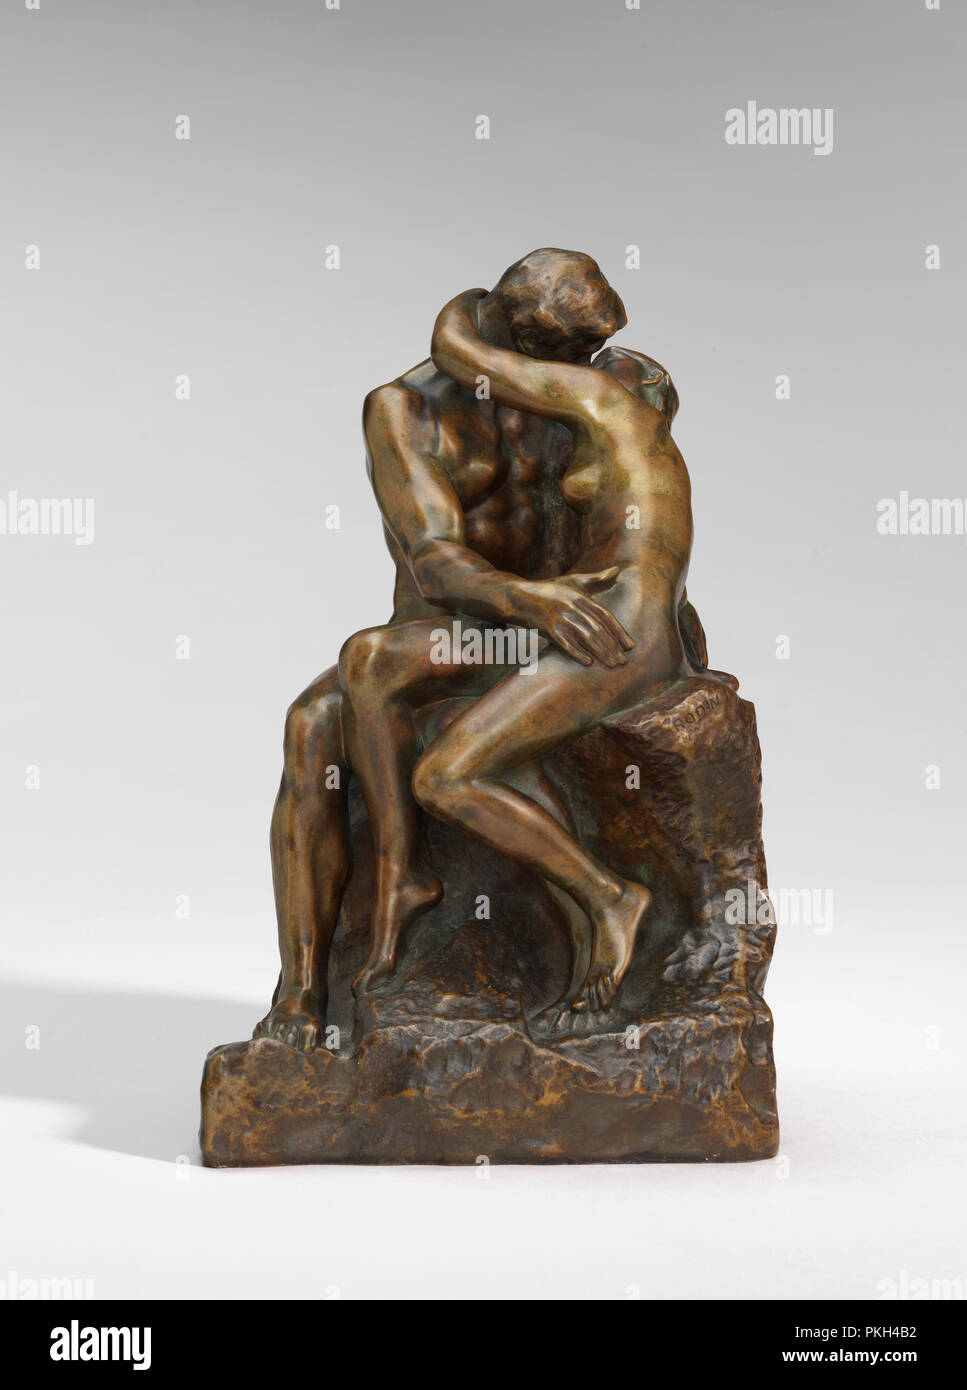 The Kiss (Le Baiser). Dated: model 1880-1887, cast c. 1898/1902. Dimensions: overall: 24.7 x 15.8 x 17.4 cm (9 3/4 x 6 1/4 x 6 7/8 in.). Medium: bronze. Museum: National Gallery of Art, Washington DC. Author: AUGUSTE RODIN. Stock Photo